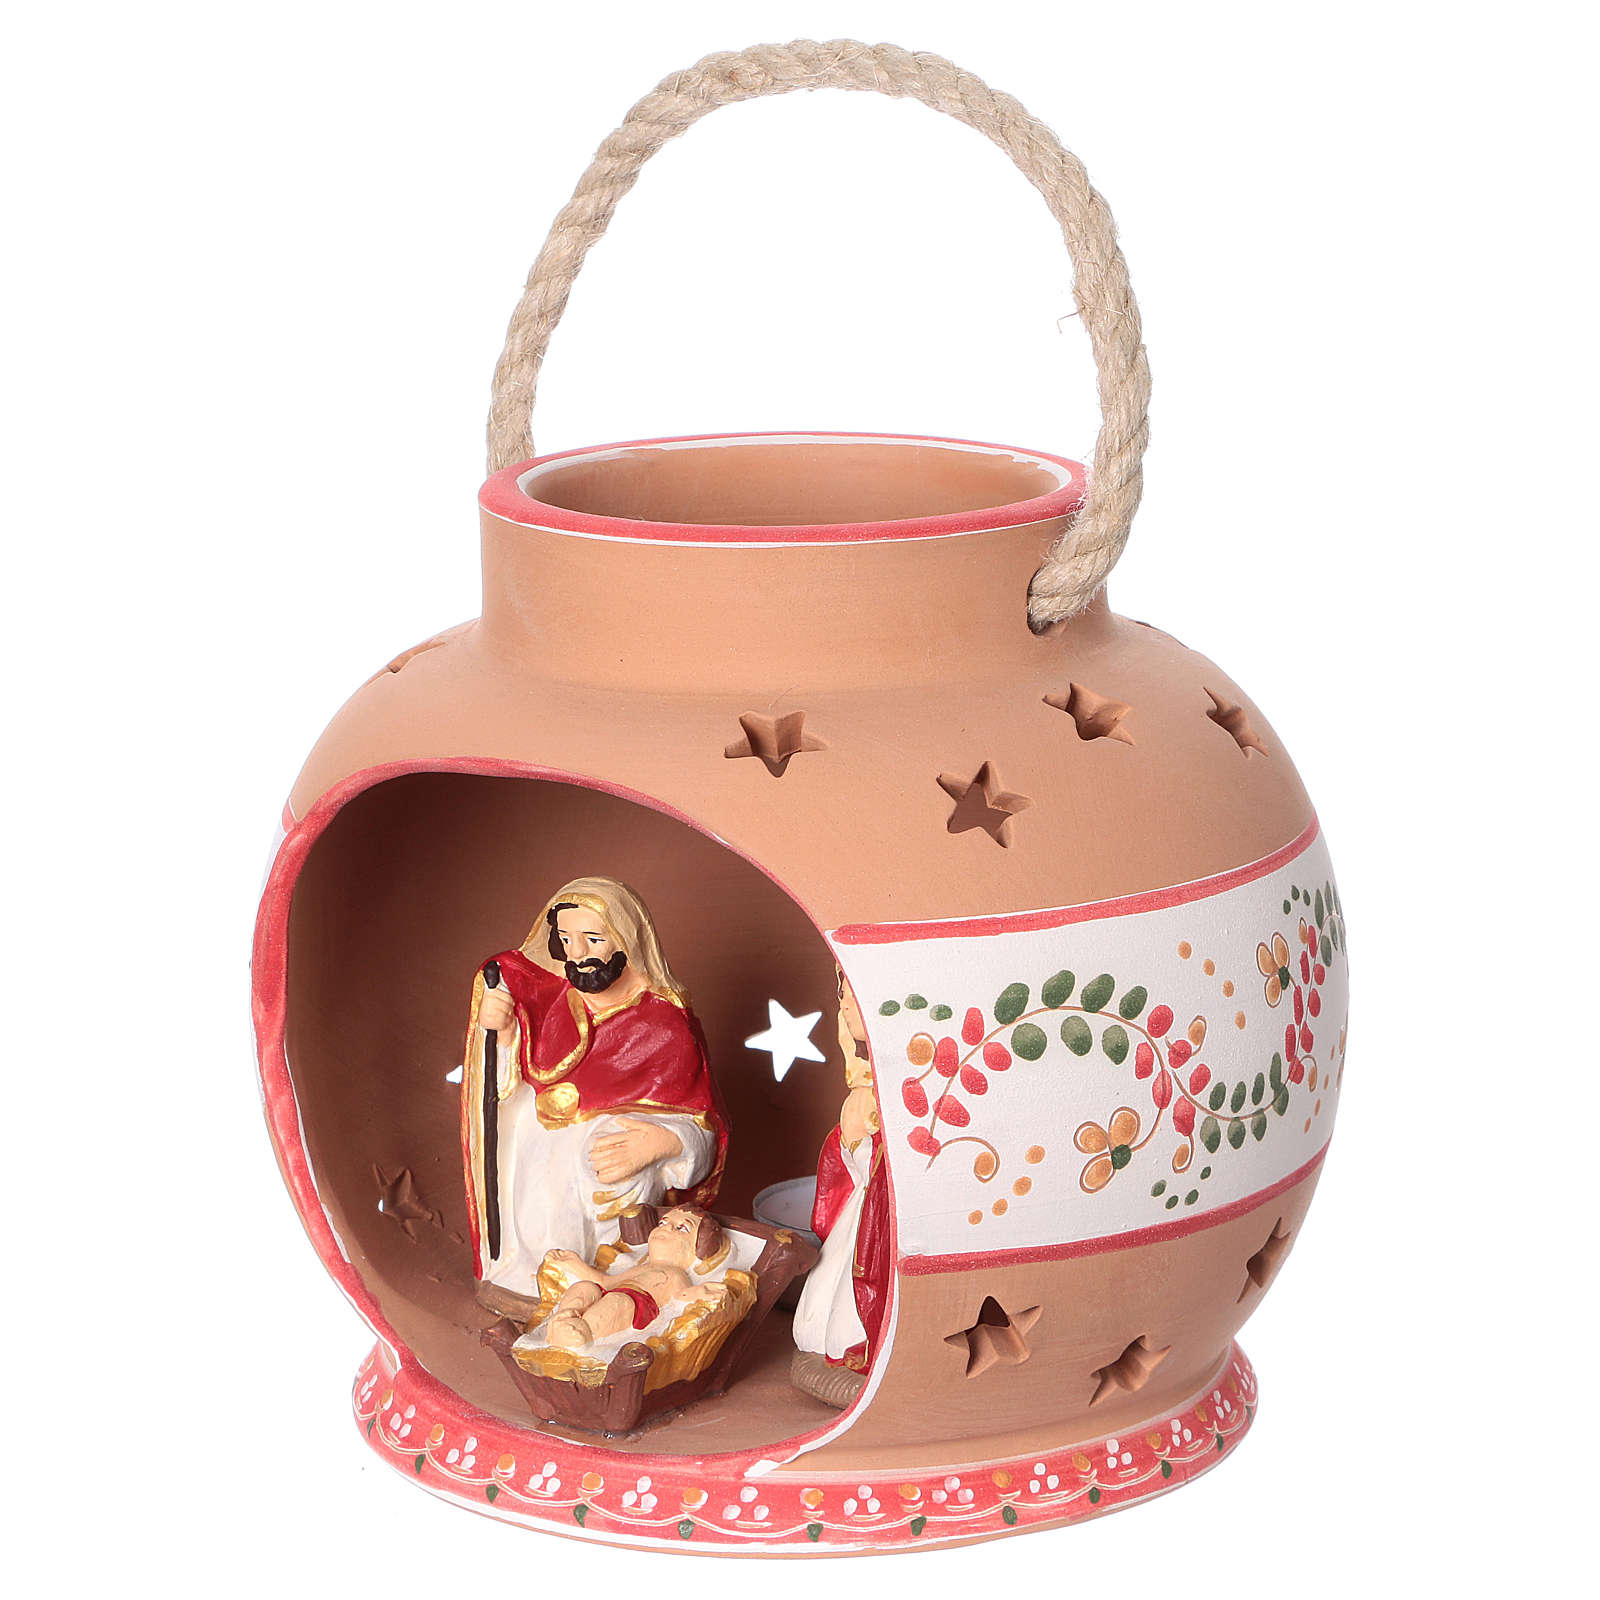 Spherical lantern with star-shaped holes red decorations, 9 cm nativity 15x20x20 cm 4